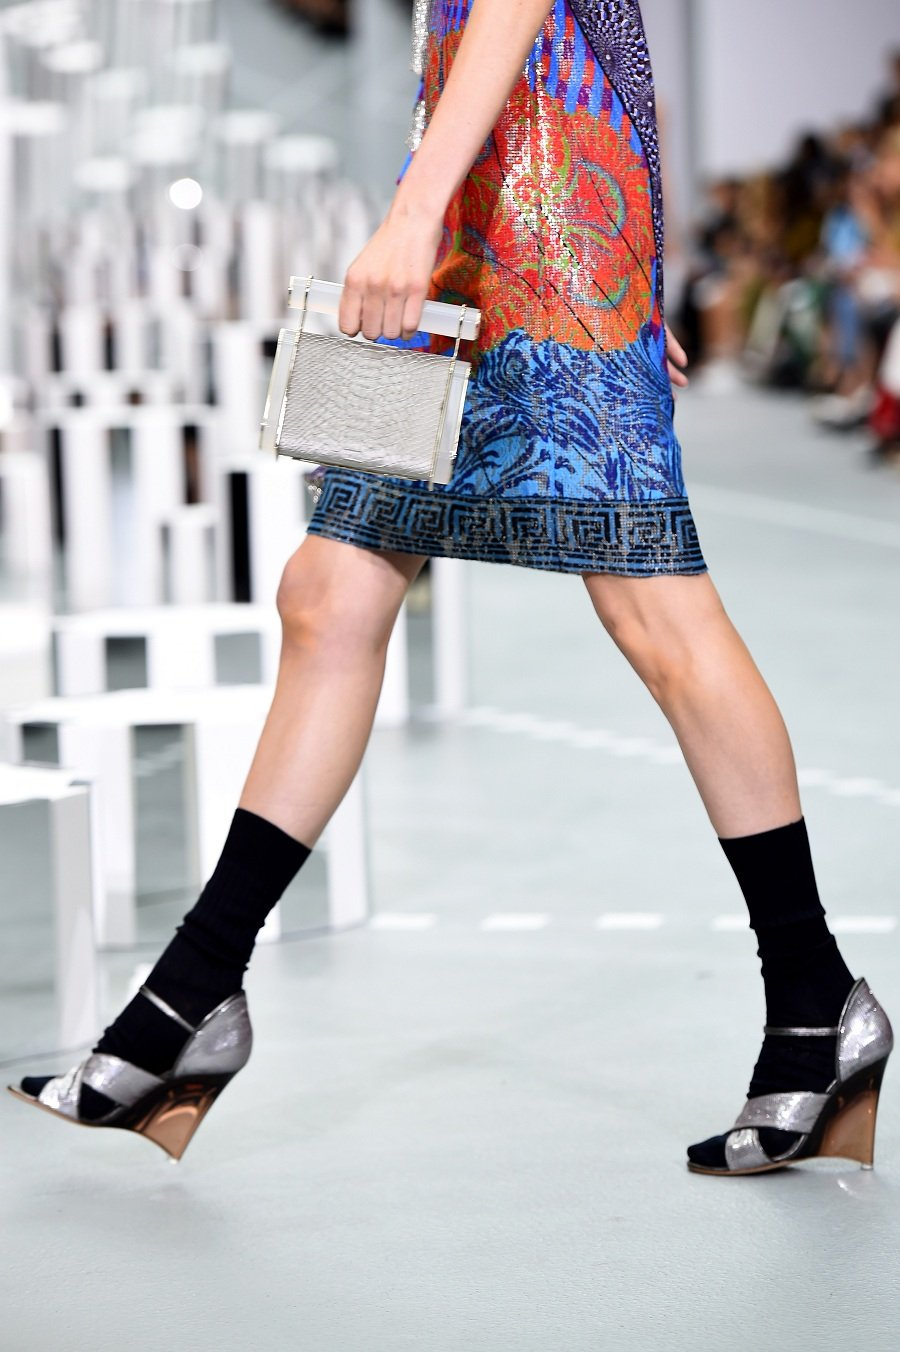 A model carries a clutch bag at the Mary Katrantzou show during London Fashion Week